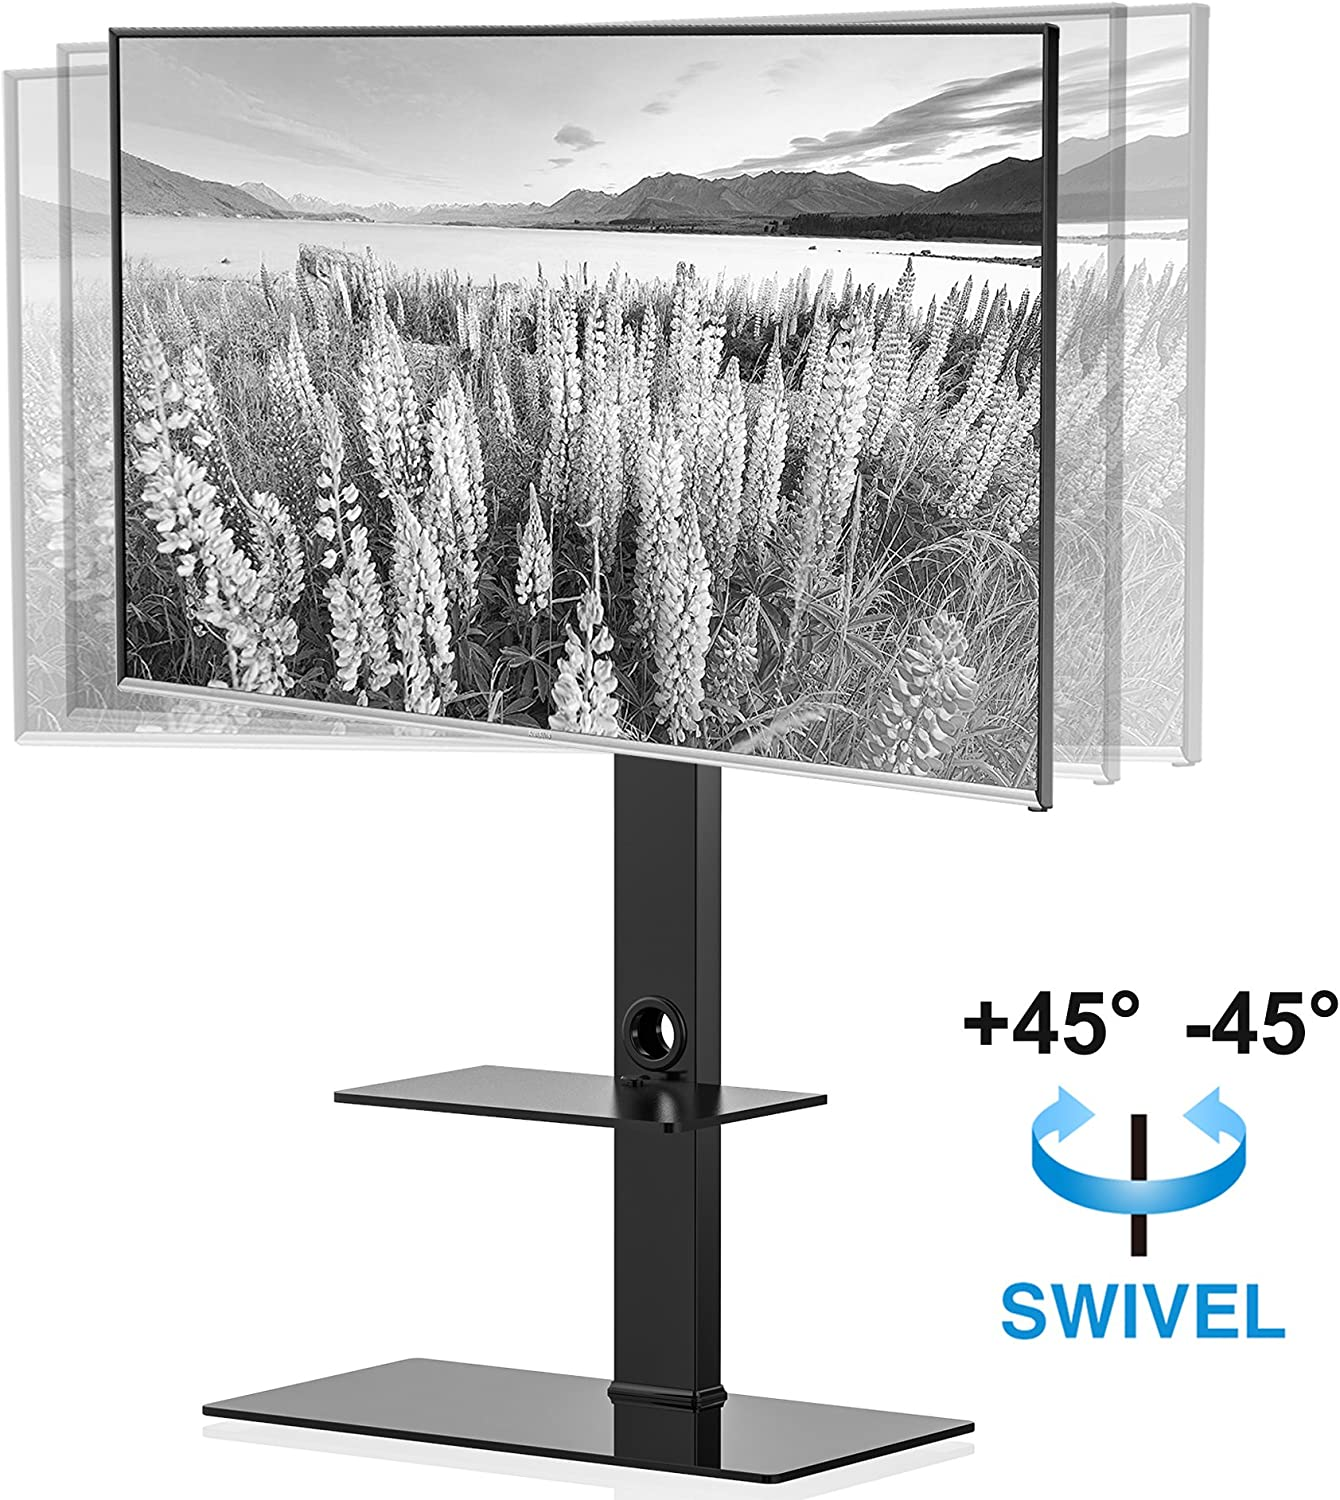 FITUEYES Universal Floor TV Stand with Swivel Mount for 50-80 Inch Flat or Curved Screens, Weight Up to 132 lbs with Tempered Glass Base TT208001MB